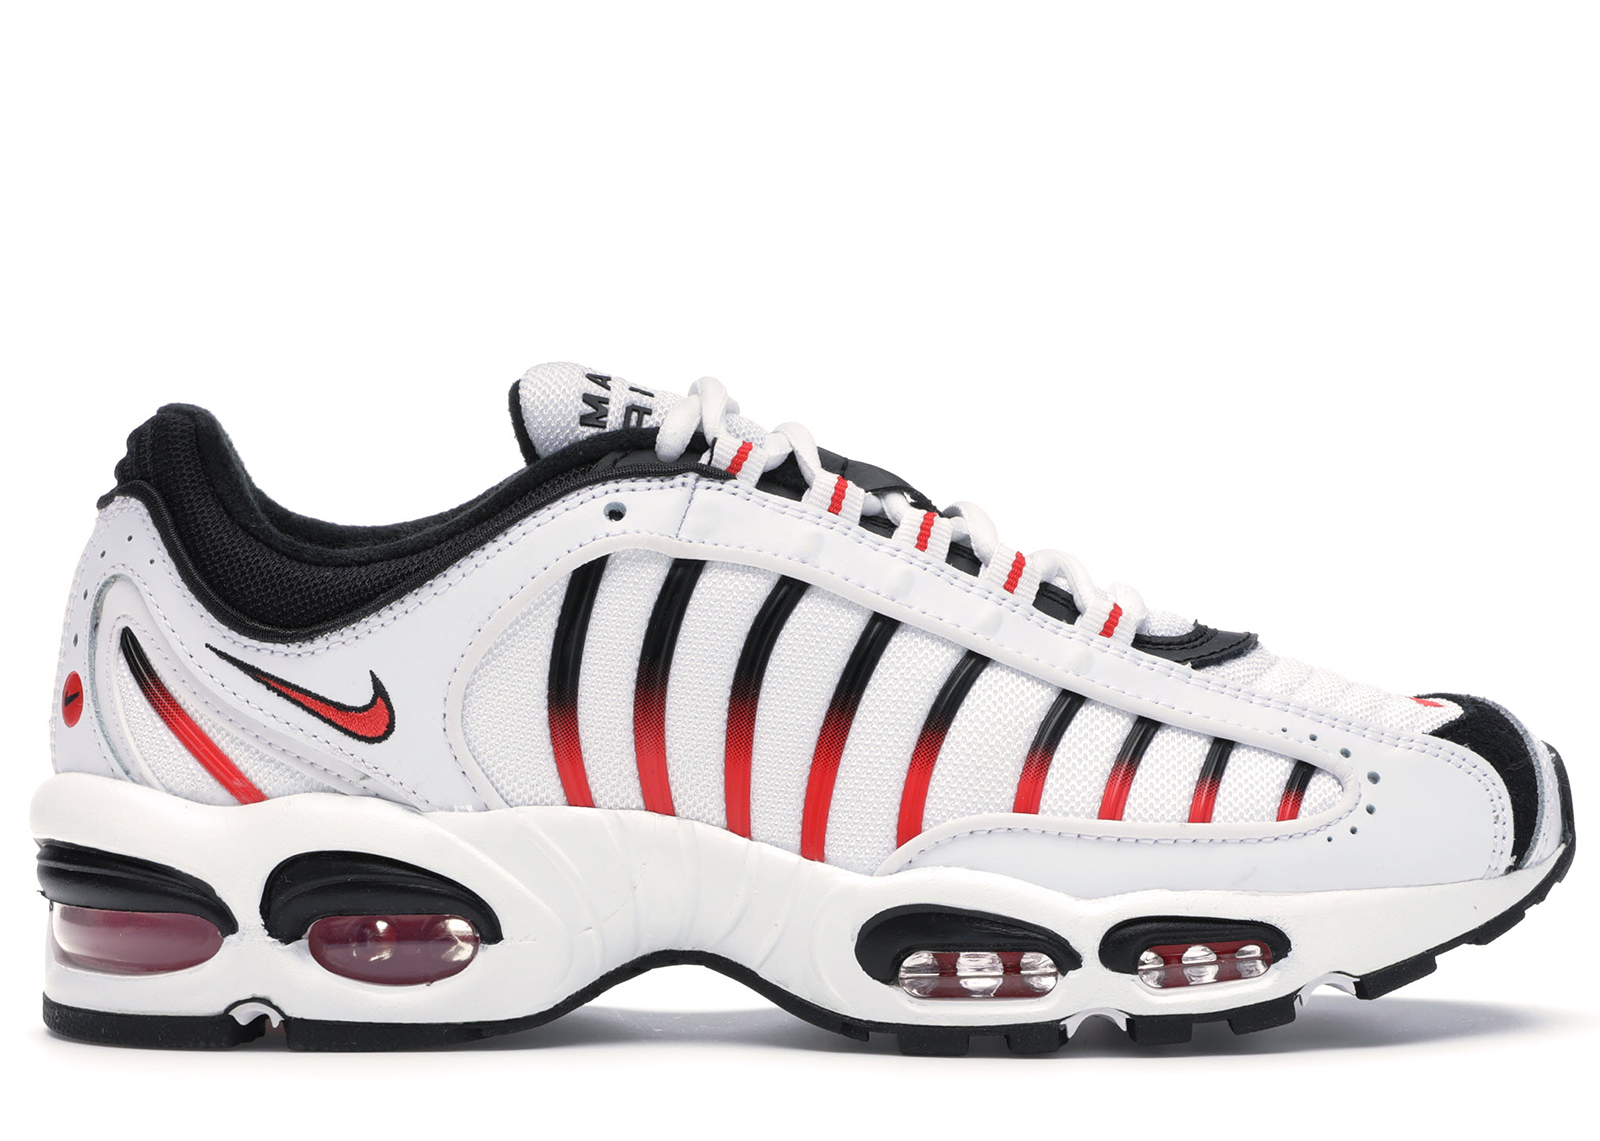 Nike Air Max Tailwind 4 White Black Red